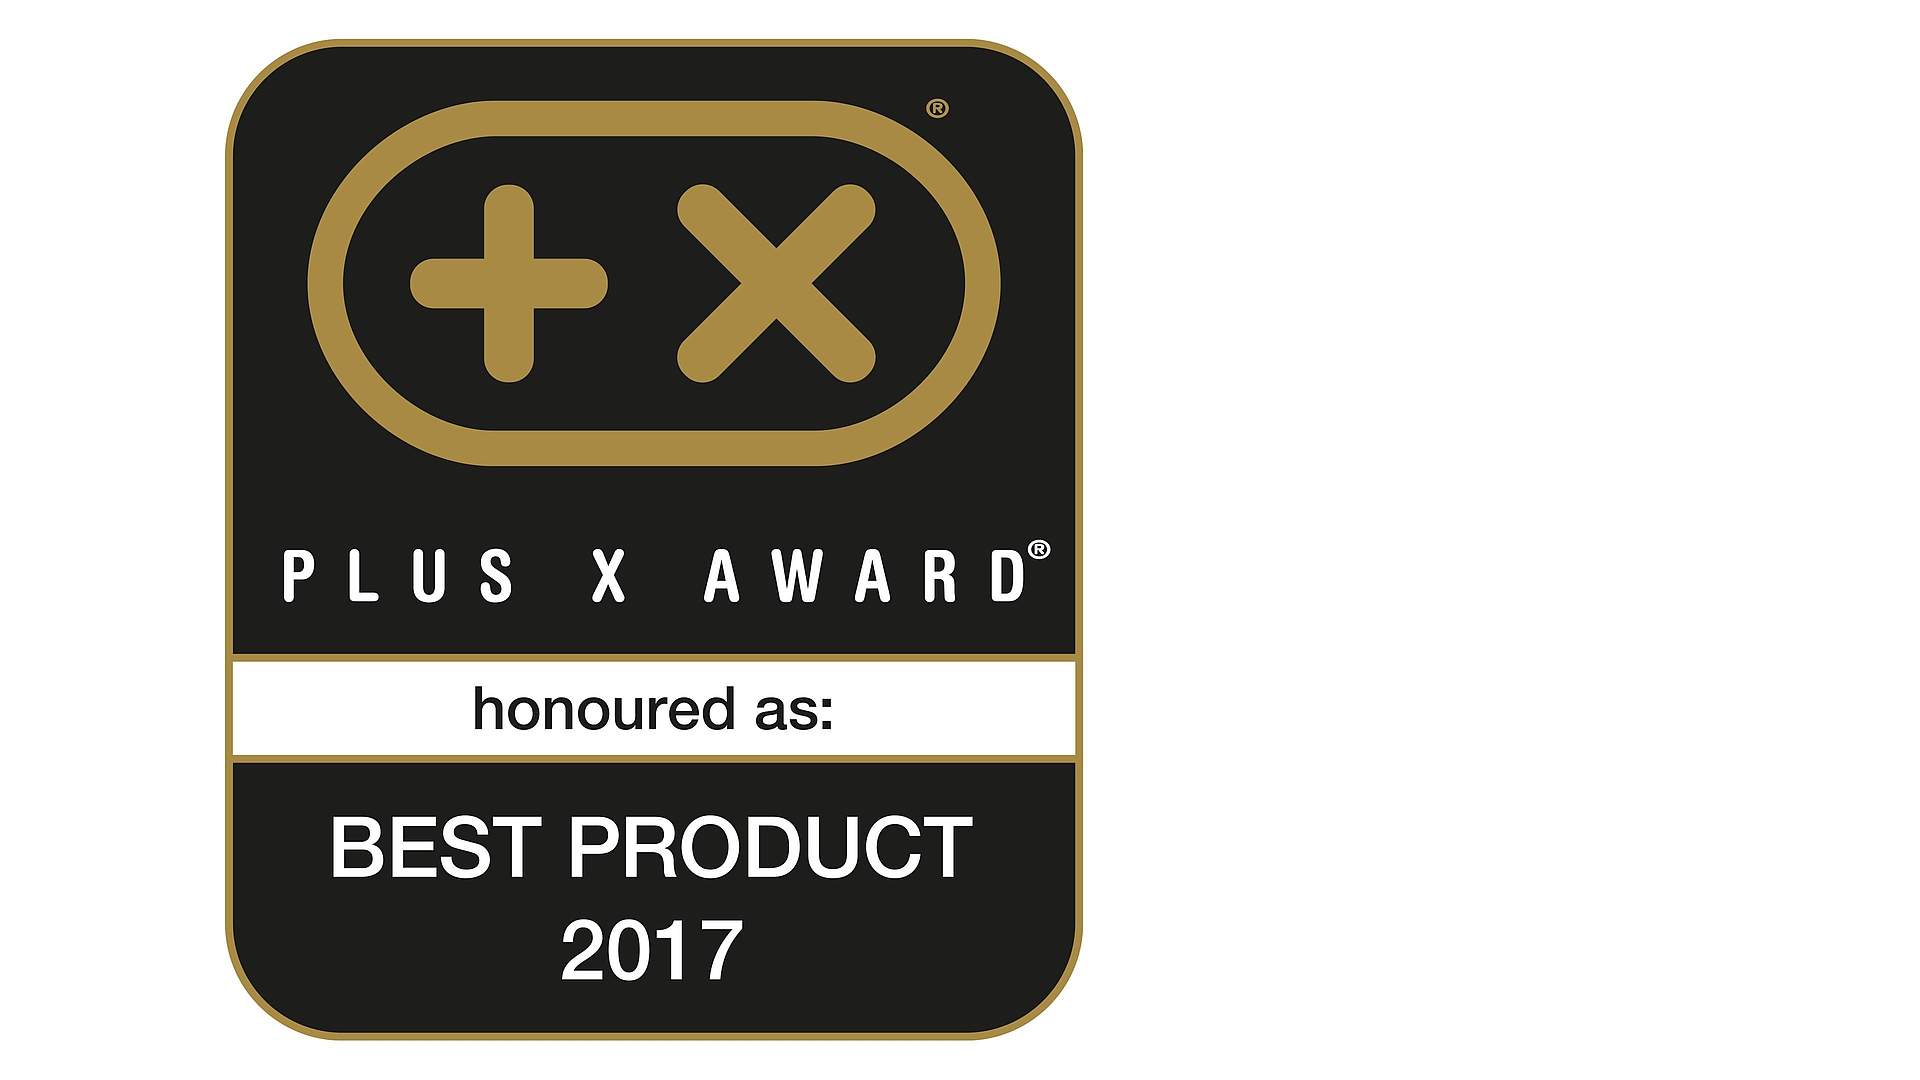 bora-com_awards_3840x2160px_0019_pxa_Best-Product-2017_EN.jpg